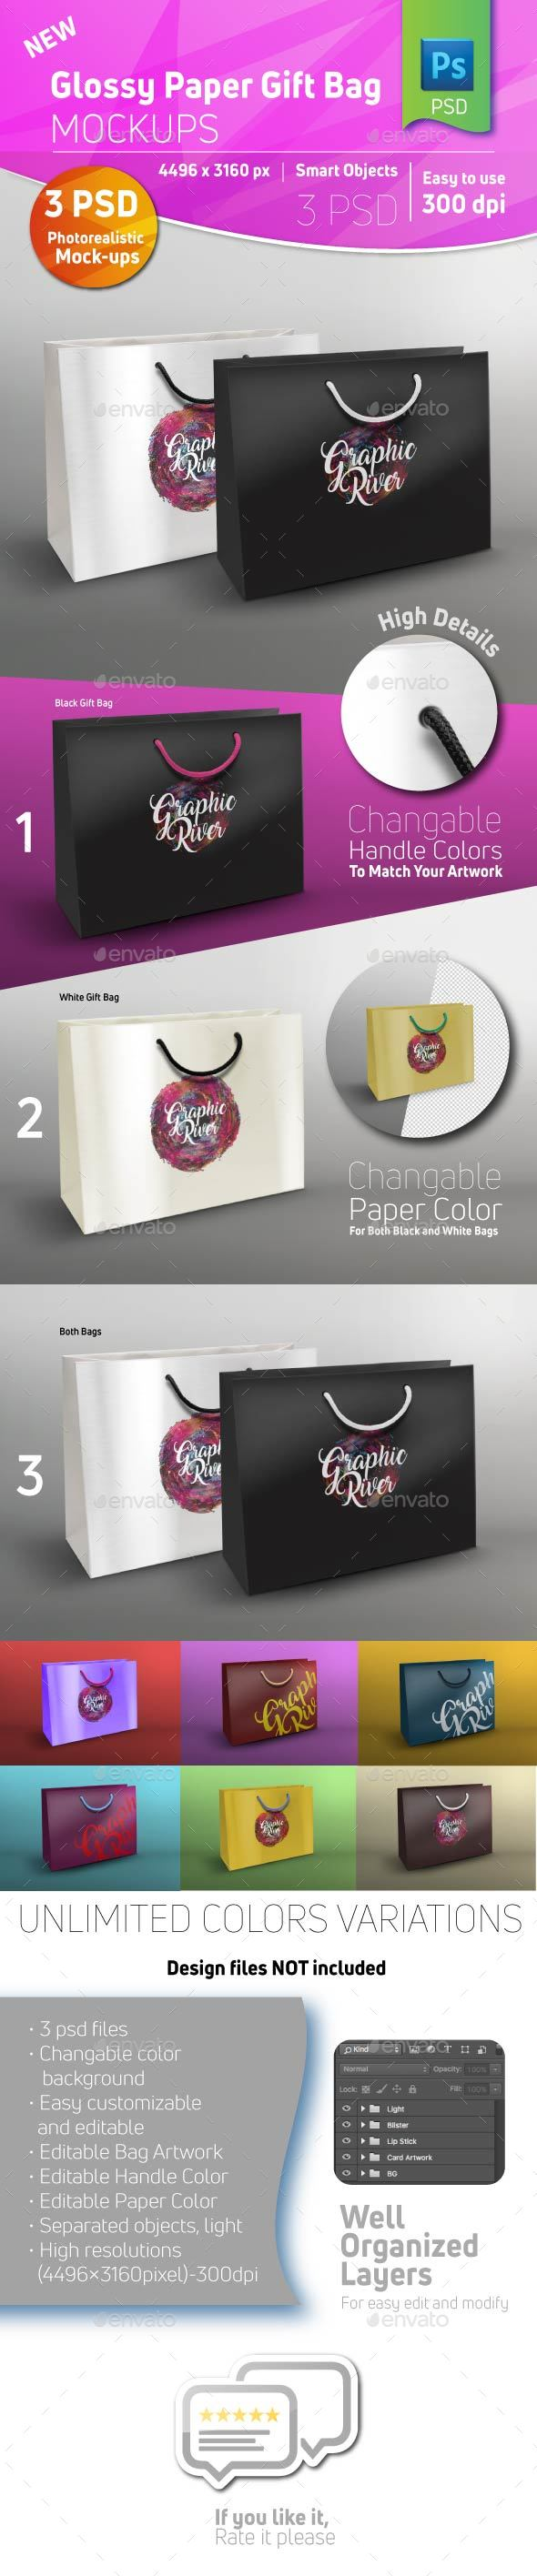 Glossy Paper Shopping Gift Bag Mockup - Miscellaneous Packaging